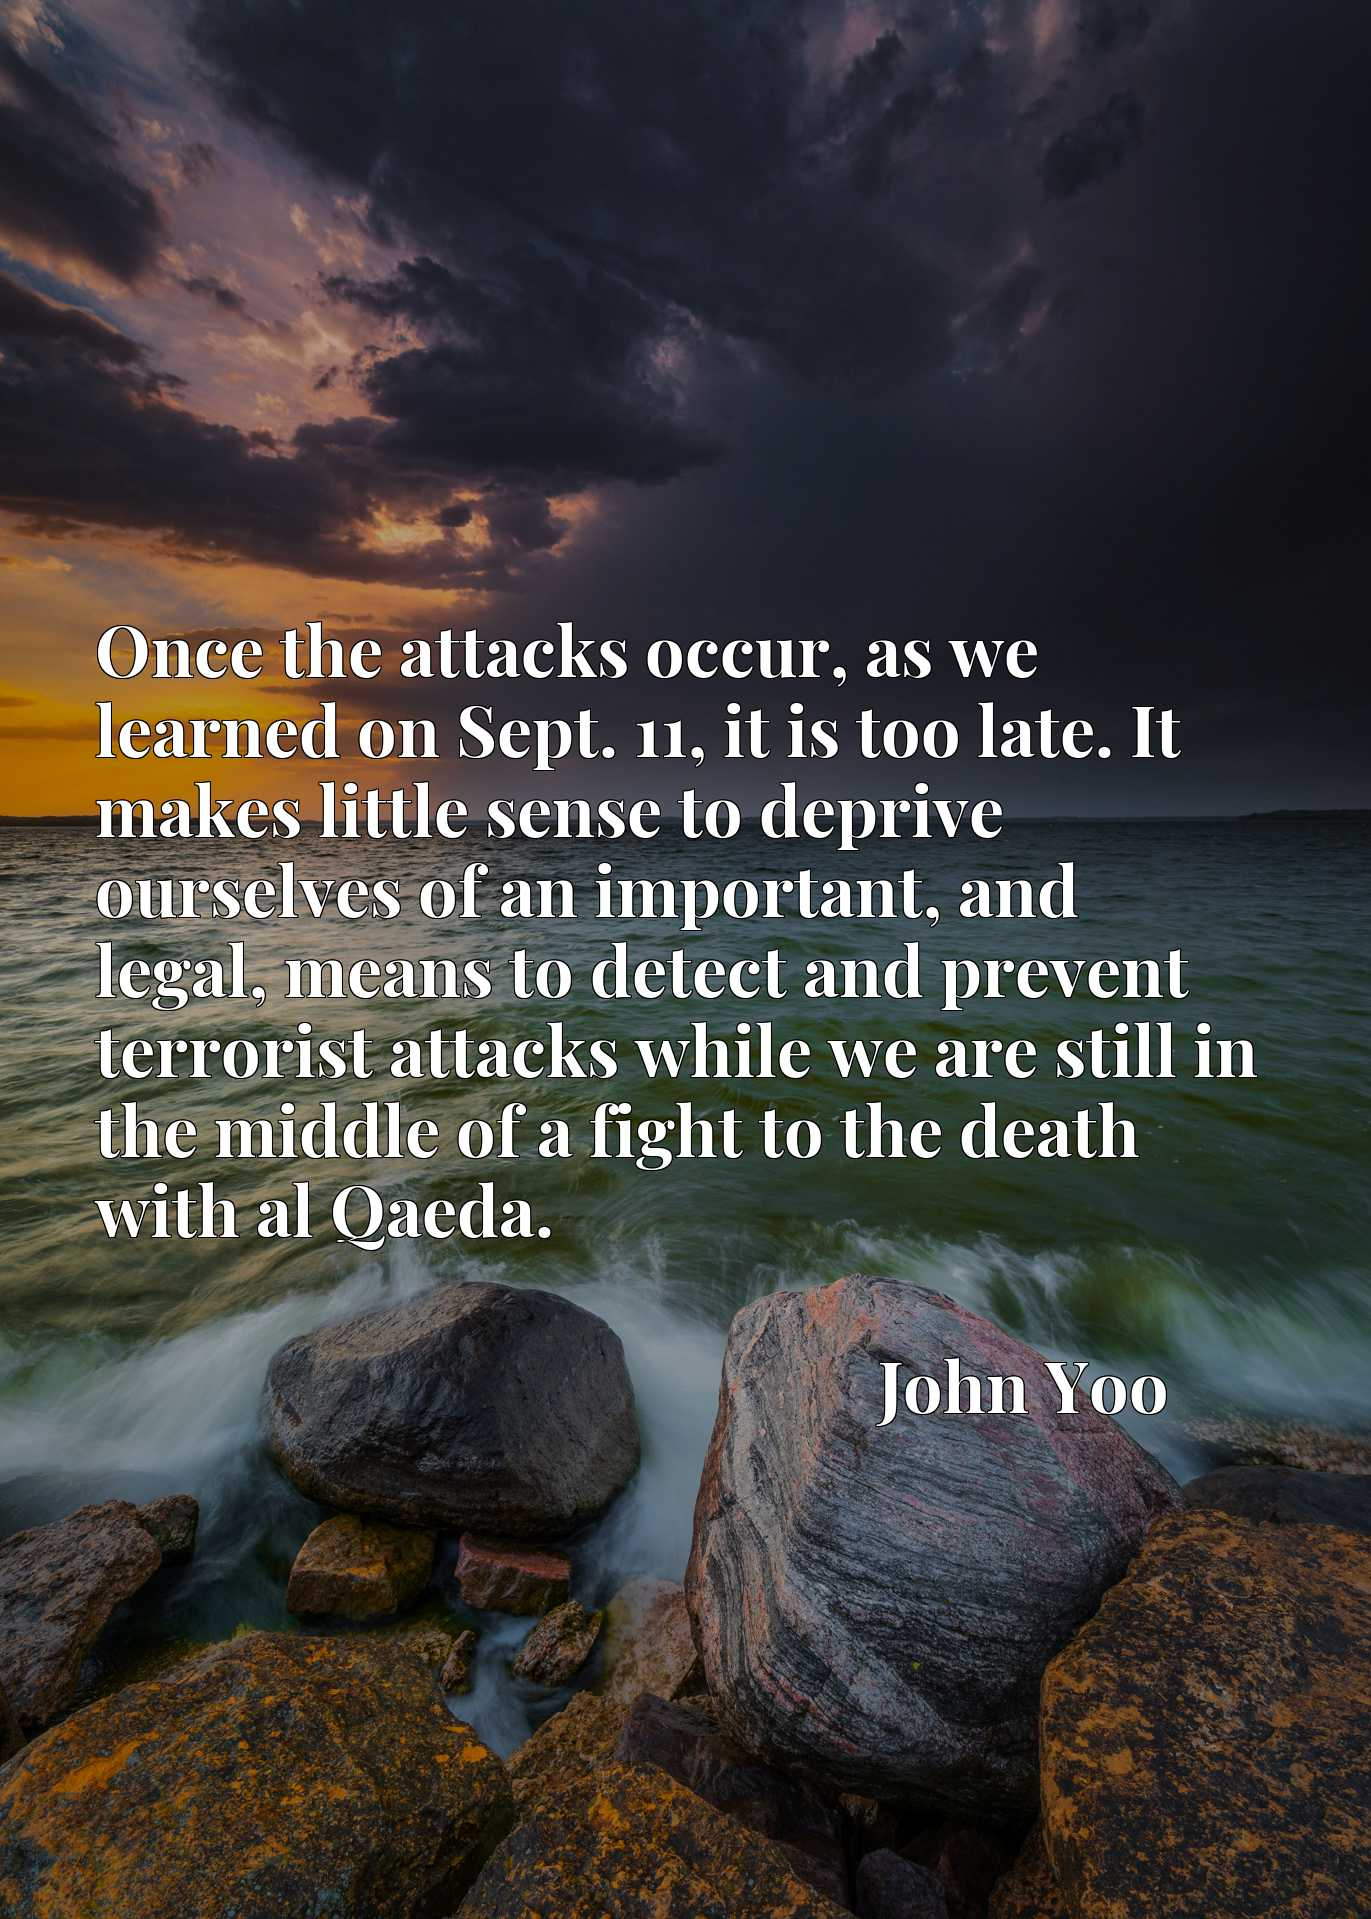 Quote Picture :Once the attacks occur, as we learned on Sept. 11, it is too late. It makes little sense to deprive ourselves of an important, and legal, means to detect and prevent terrorist attacks while we are still in the middle of a fight to the death with al Qaeda.